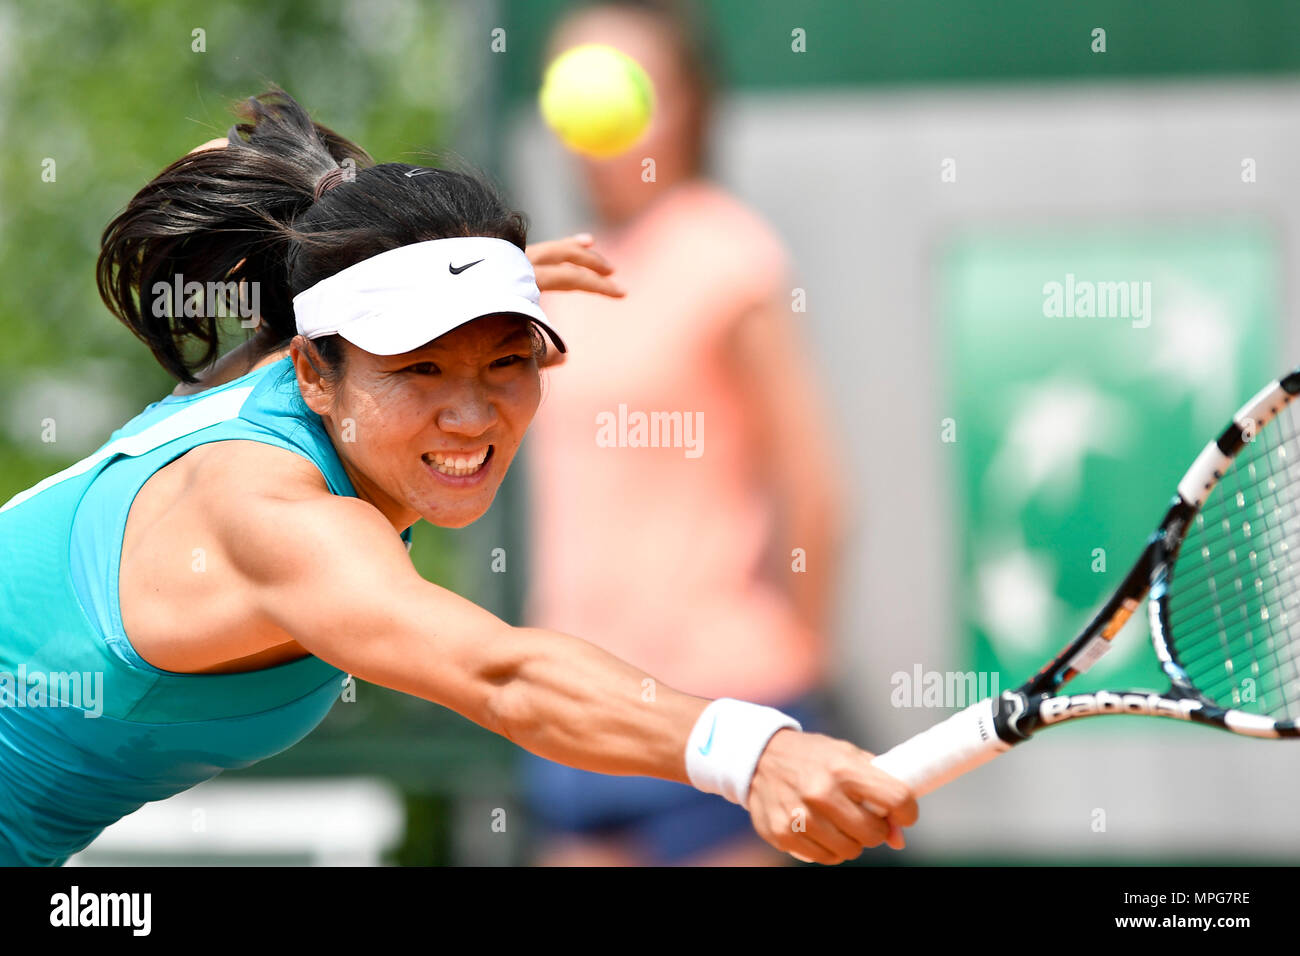 Paris. 23rd May, 2018. Lu Jingjing of China returns the ball to Gabriella Taylor of Britain during the women's singles Qualification 1st round match of French Open in Paris, France on May 23, 2018. Lu lost 0-2. Credit: Chen Yichen/Xinhua/Alamy Live News Stock Photo